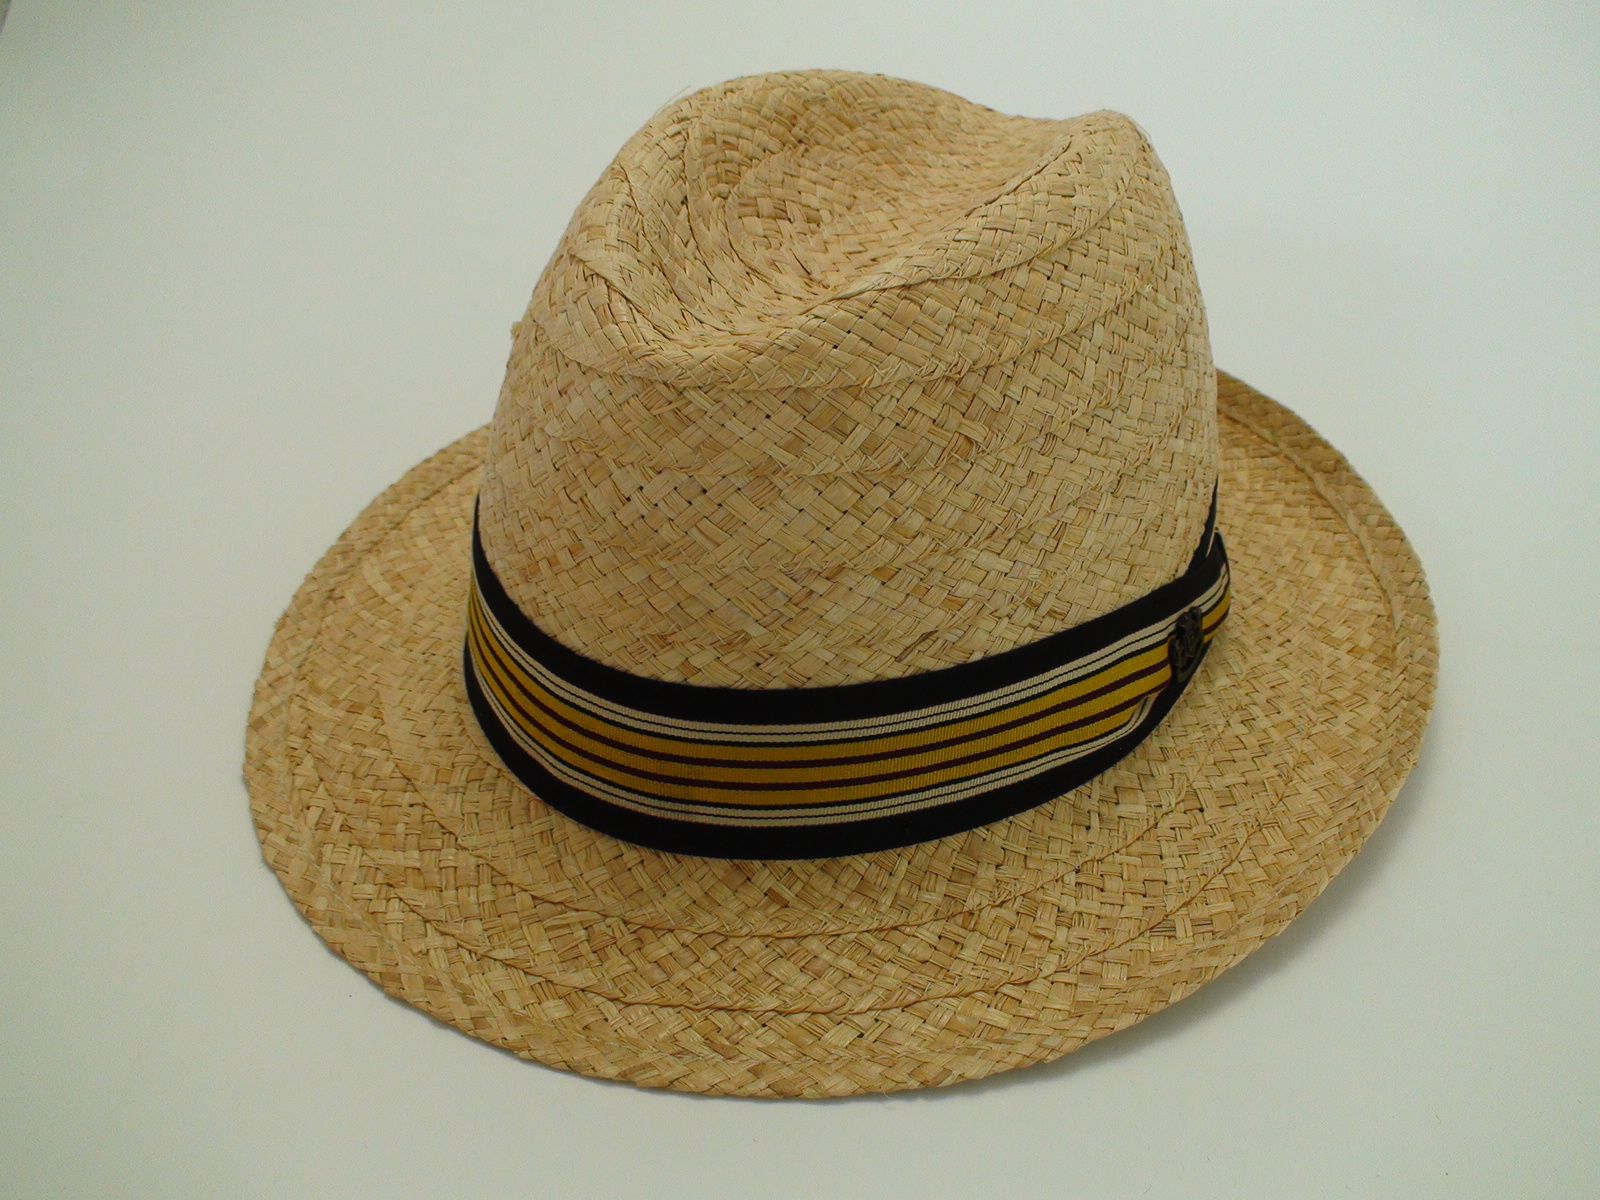 NEW Biltmore Hats Optimo Natural Genuine Raffia Panama Fedora Hat Size XL e703e45b5121